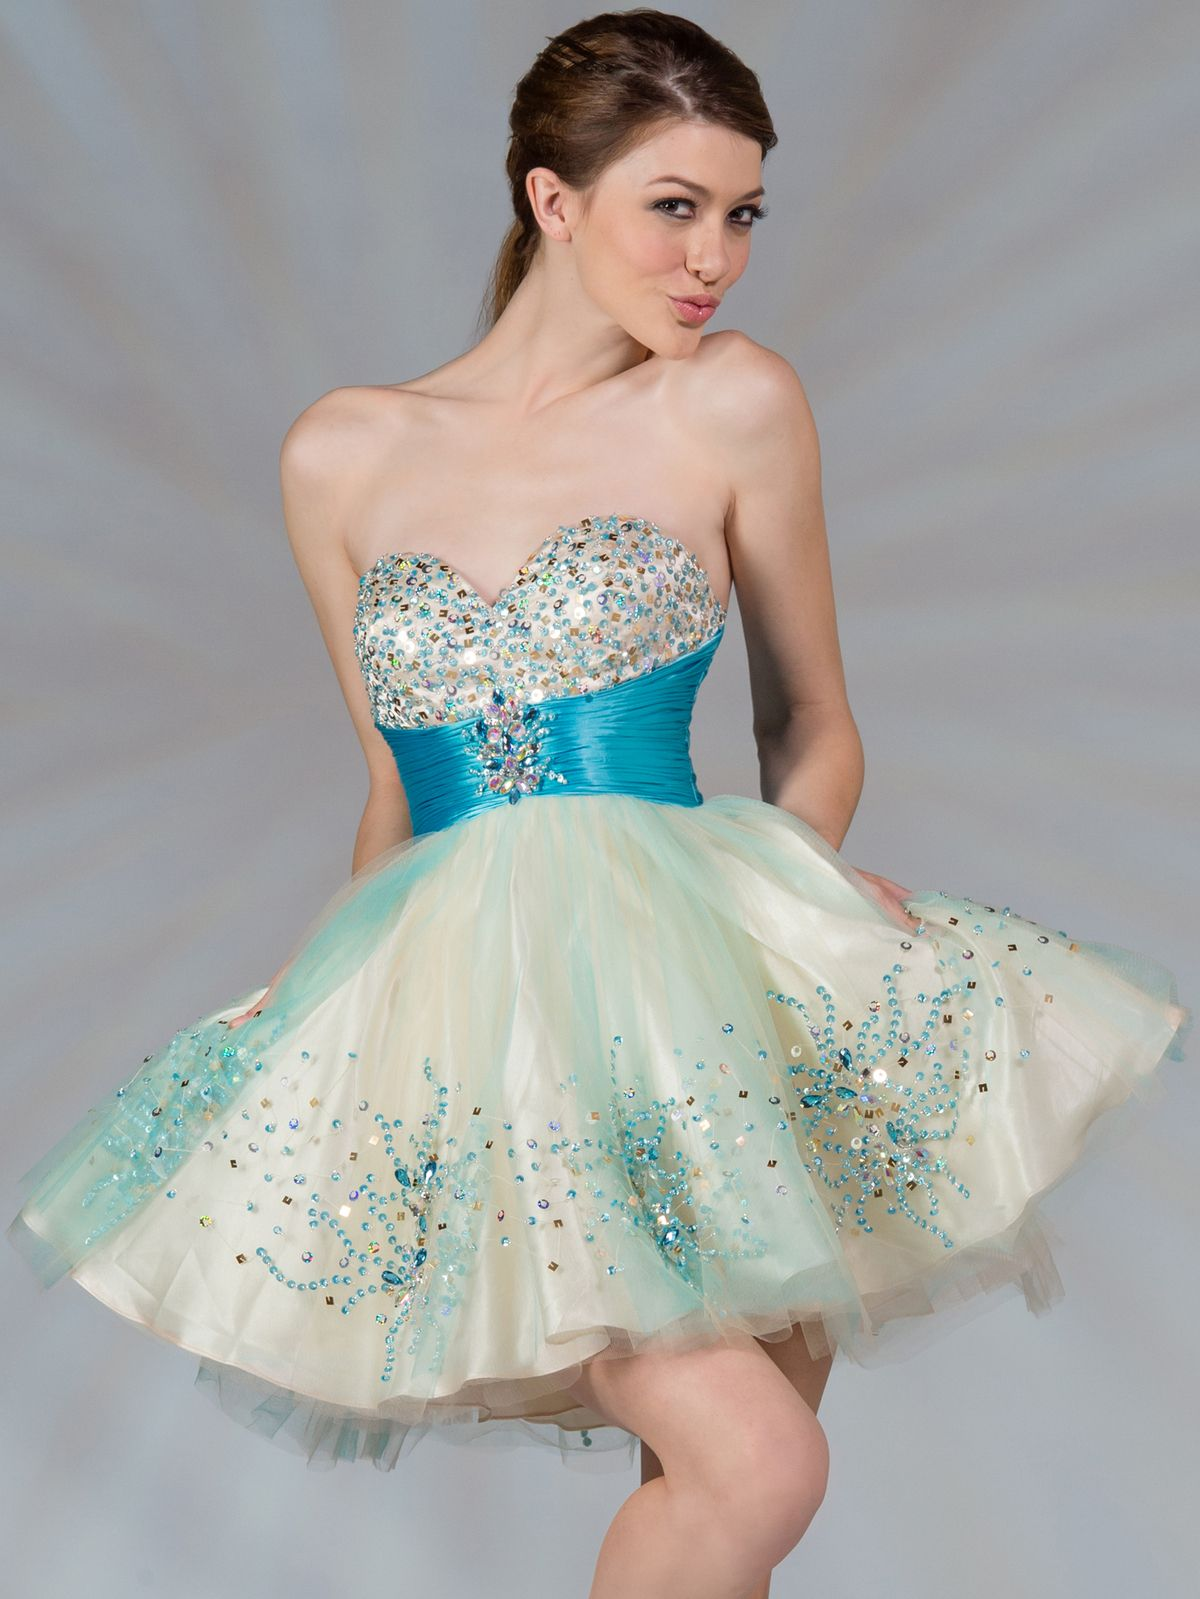 78 Best images about Lovely Short Prom Dresses For The Beautiful ...